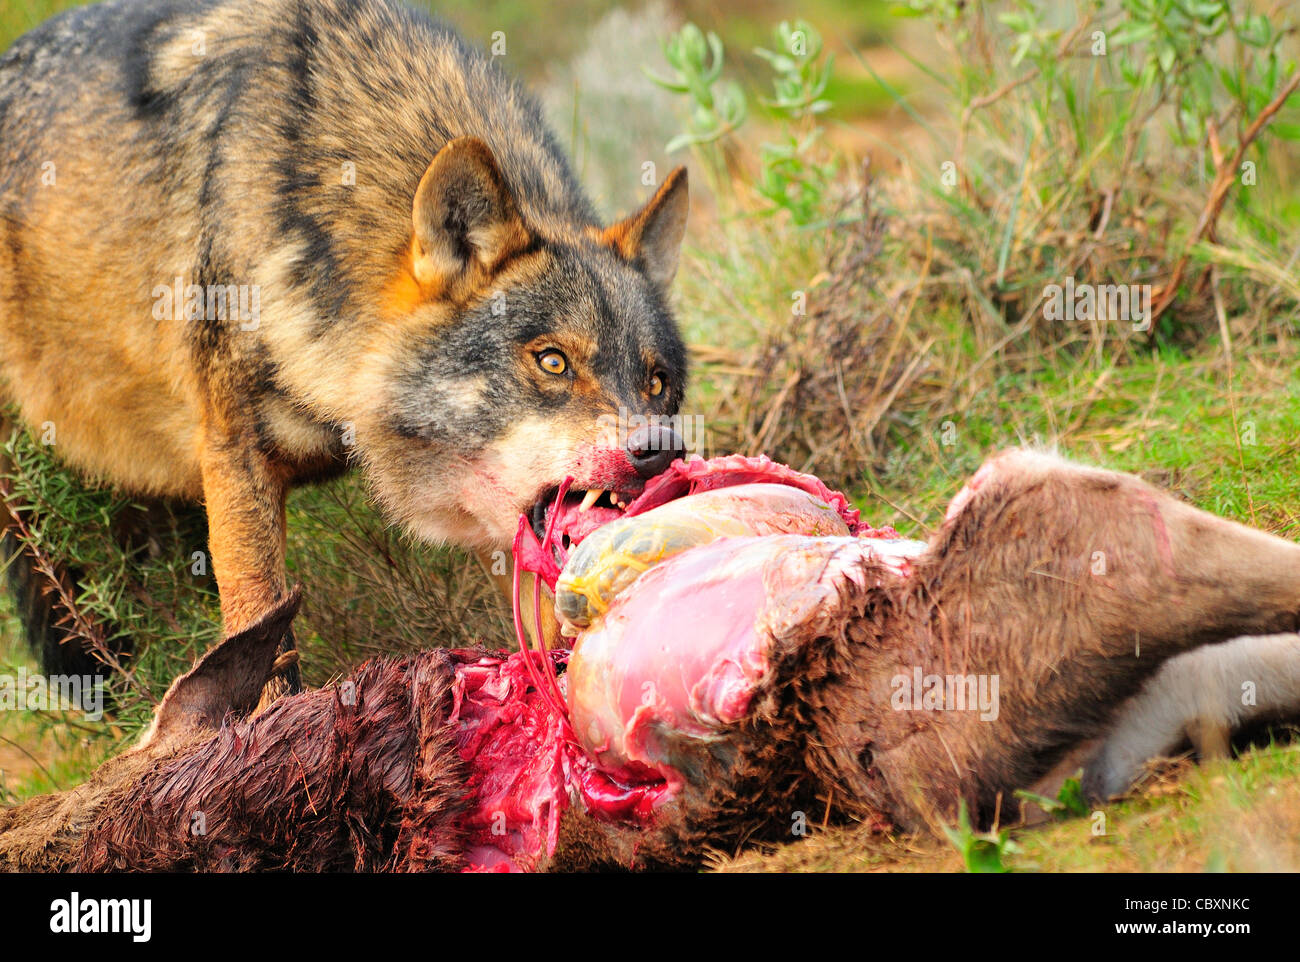 Iberian wolf (Canis lupus signatus) Iberian wolf feeding on Deer Controlled conditions - Stock Image